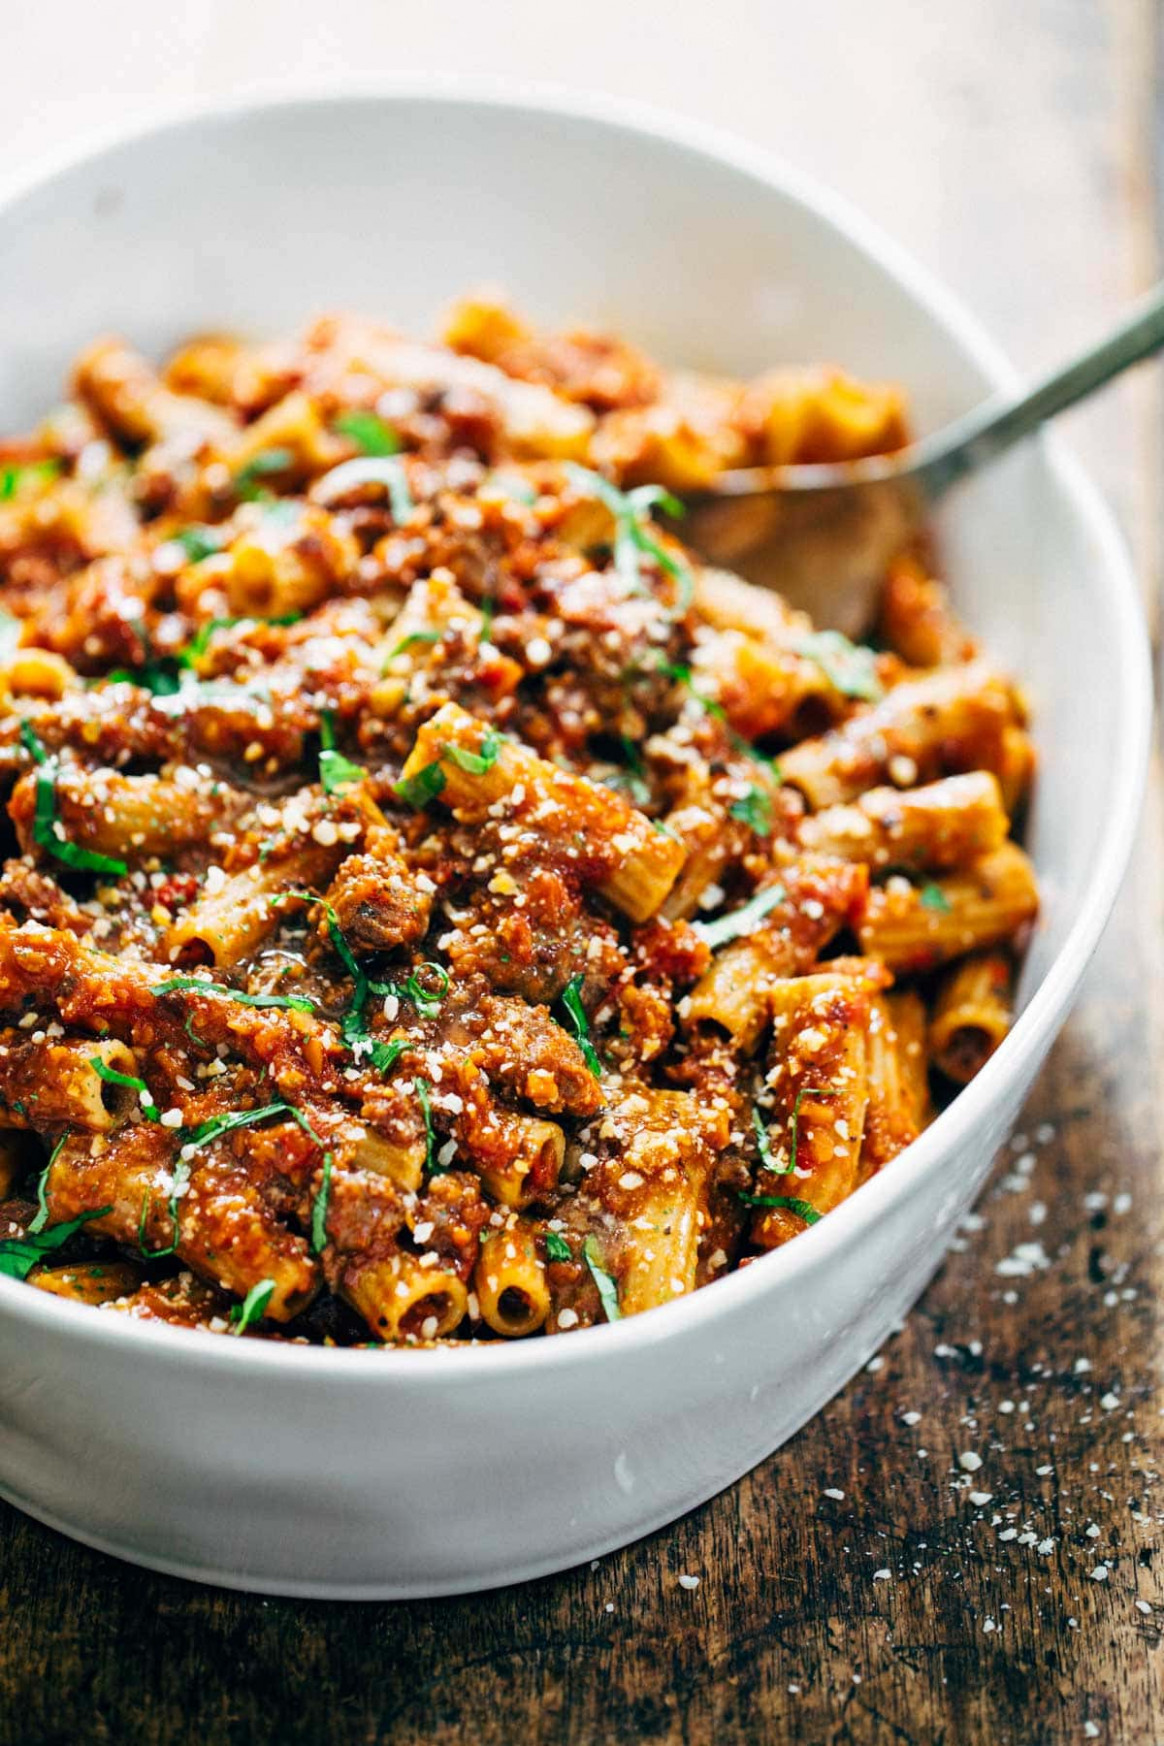 Spicy Sausage Rigatoni Recipe - Pinch of Yum